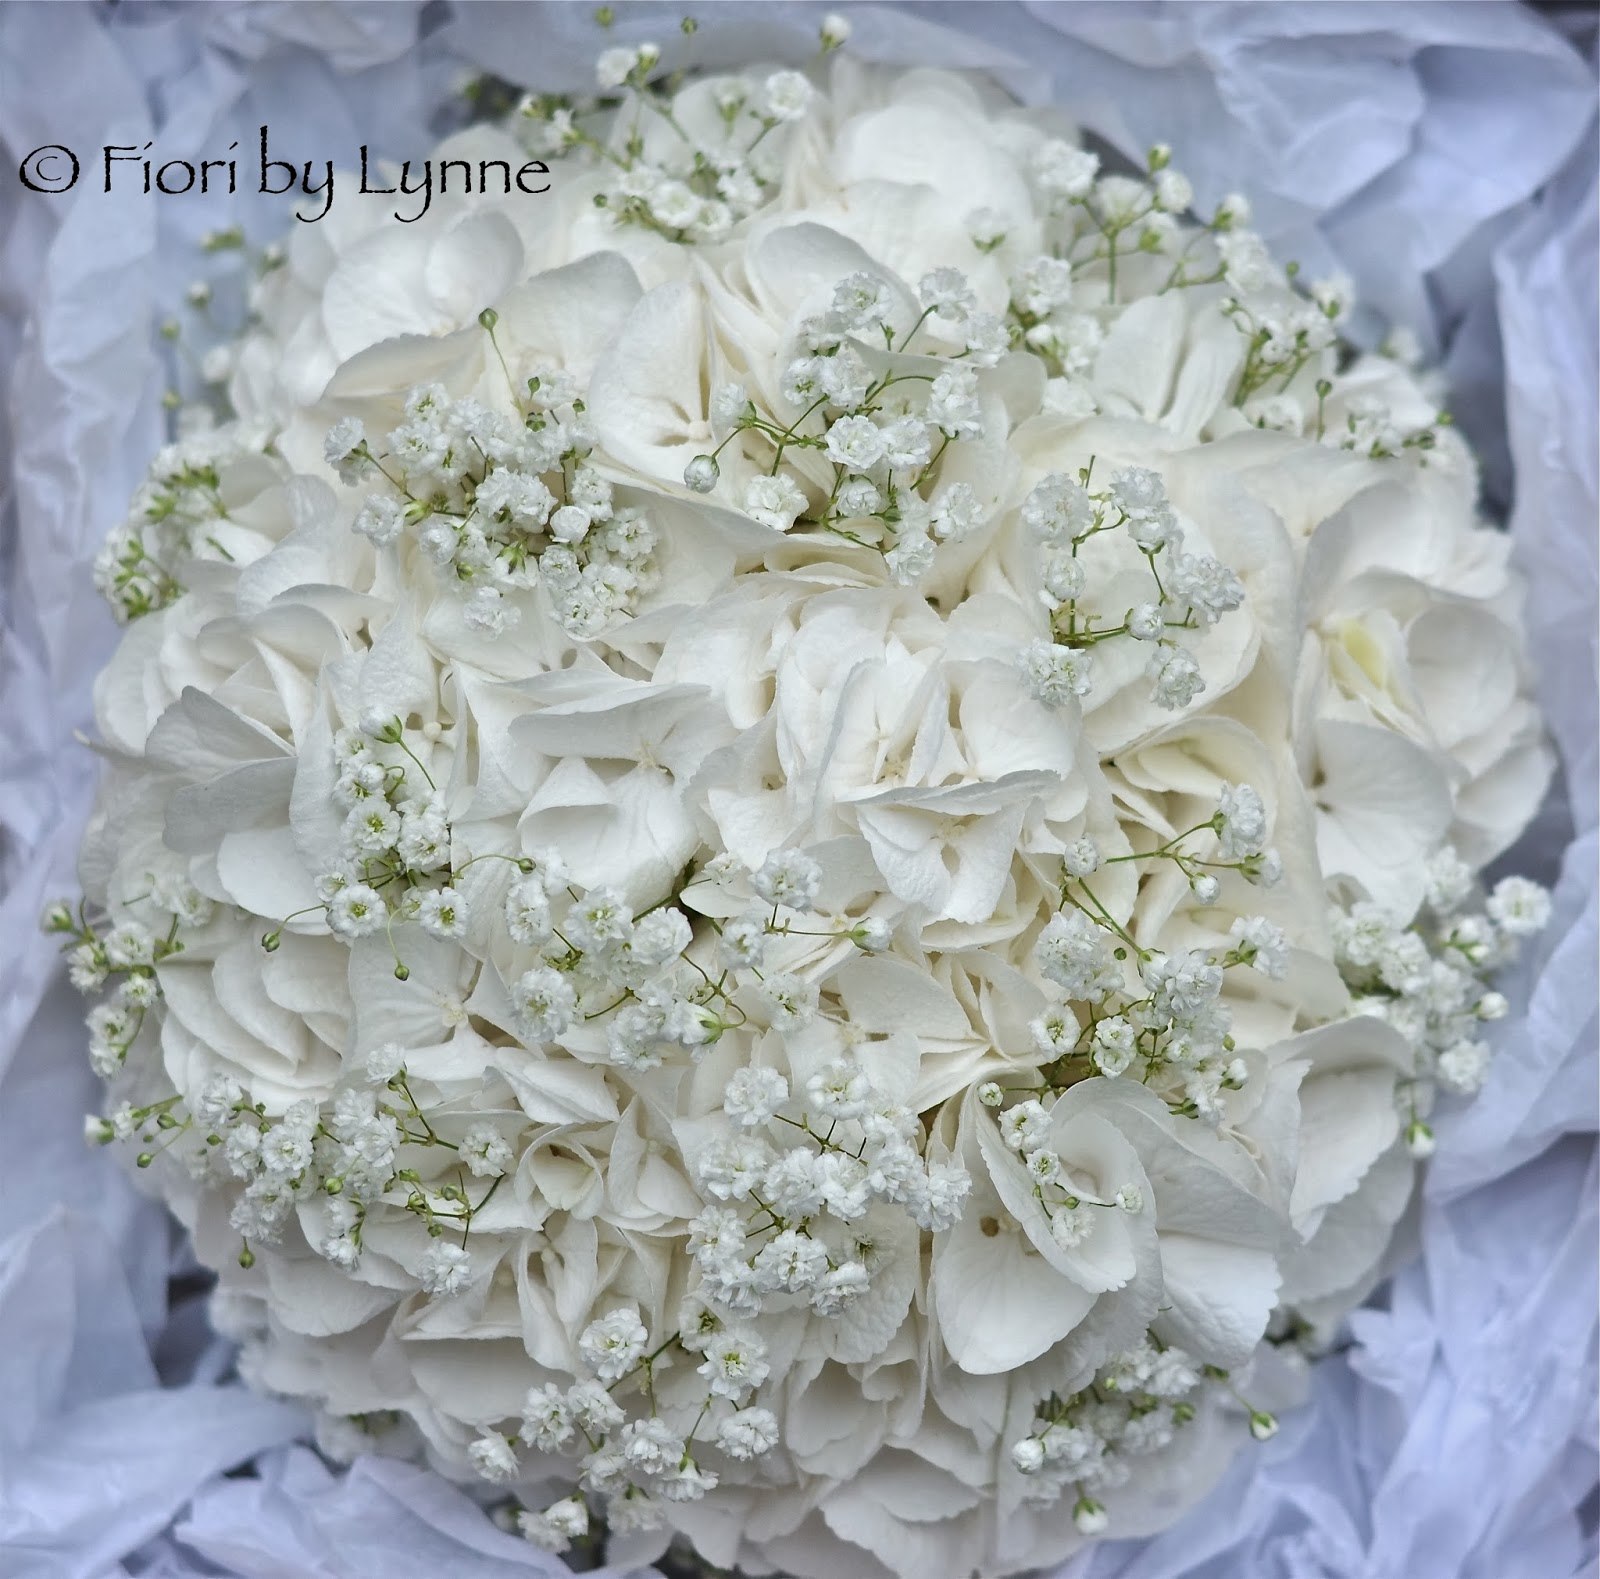 Wedding White Hydrangea: Wedding Flowers Blog: December 2013